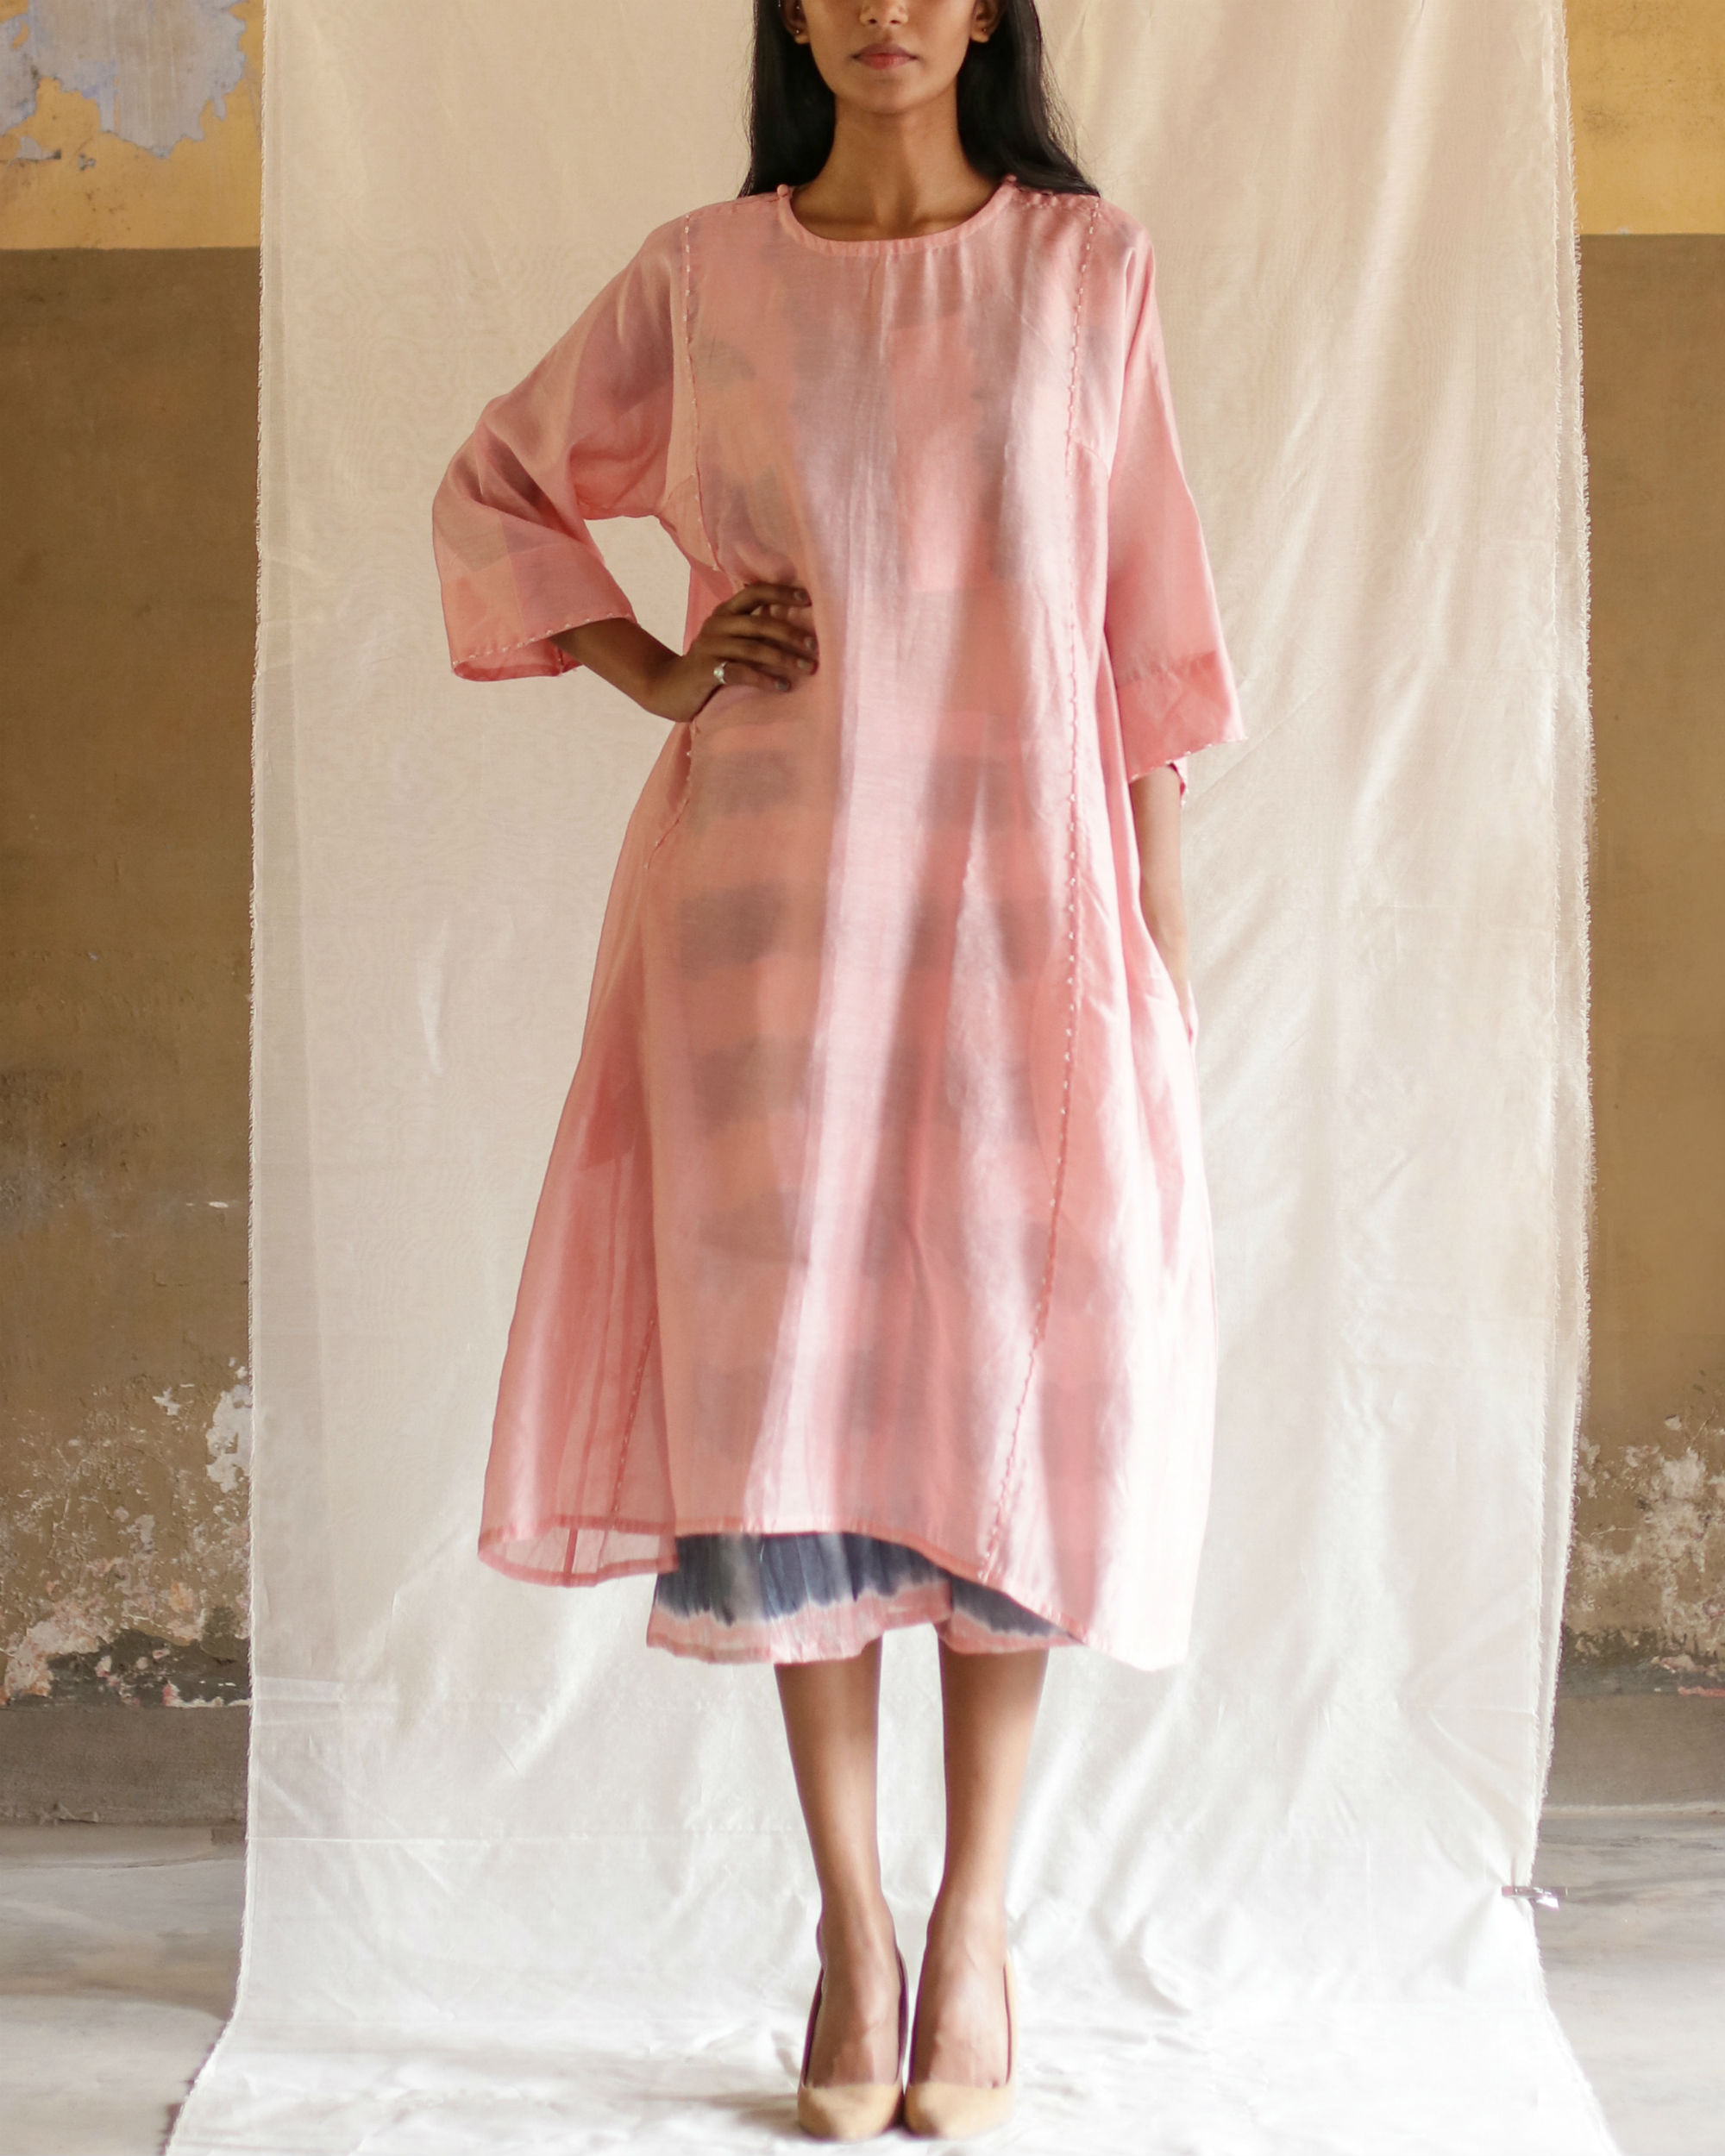 Pink tunic with crop top and culottes